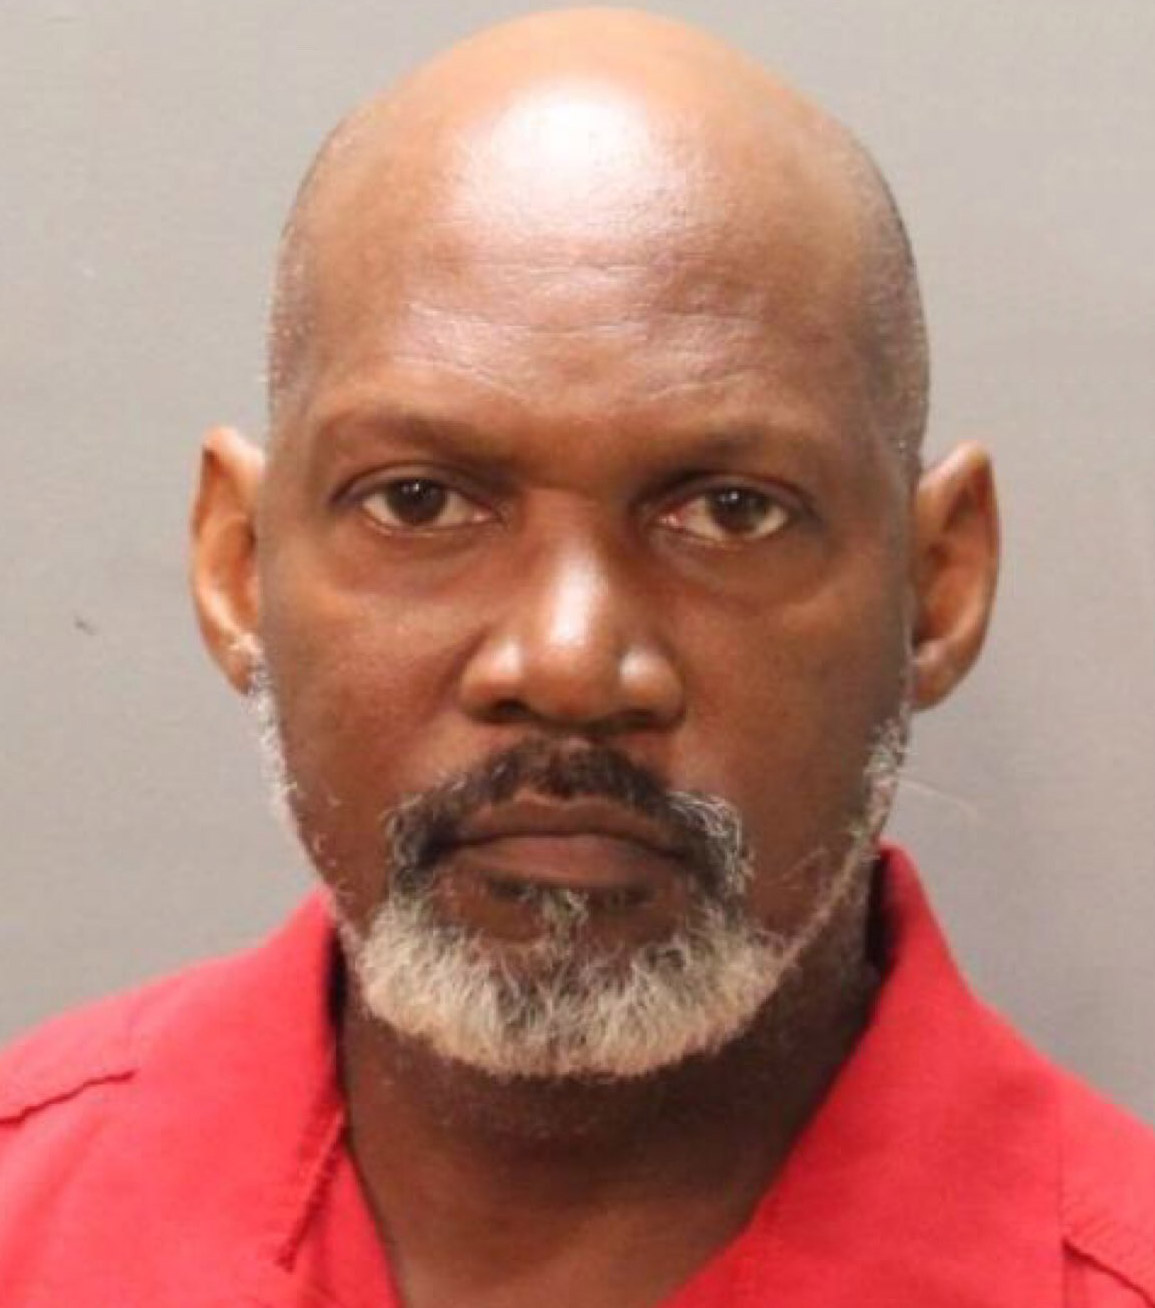 Darryl Ewing Mug Shot Ewing's Love & Hope Preschool and Academy Jacksonville Florida